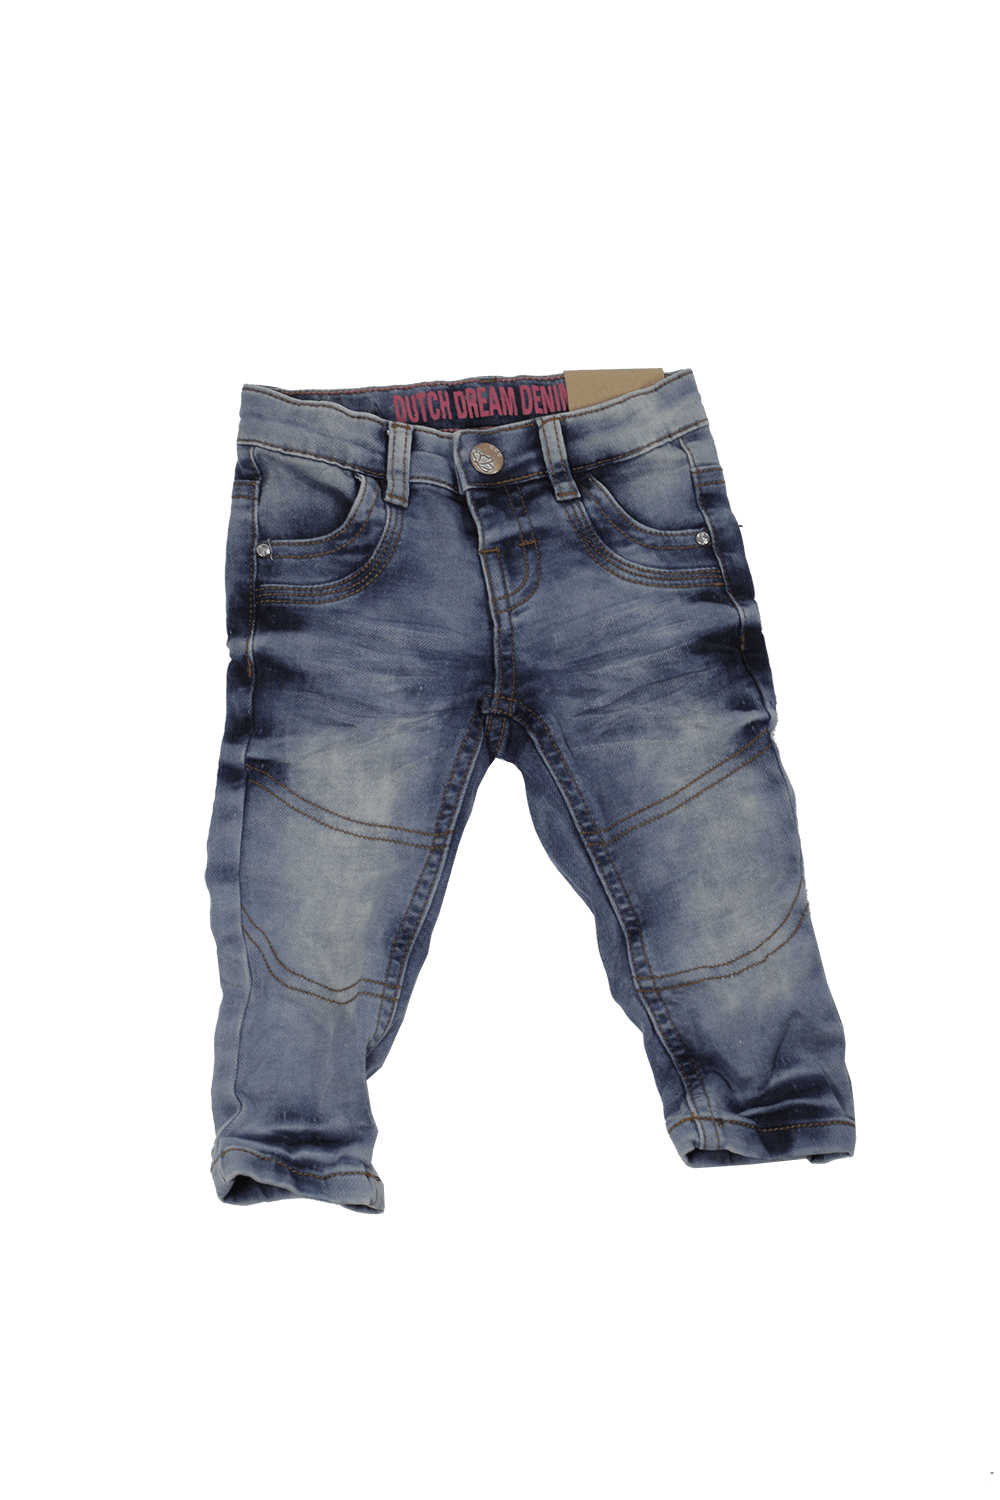 *Dutch Dream Denim baby